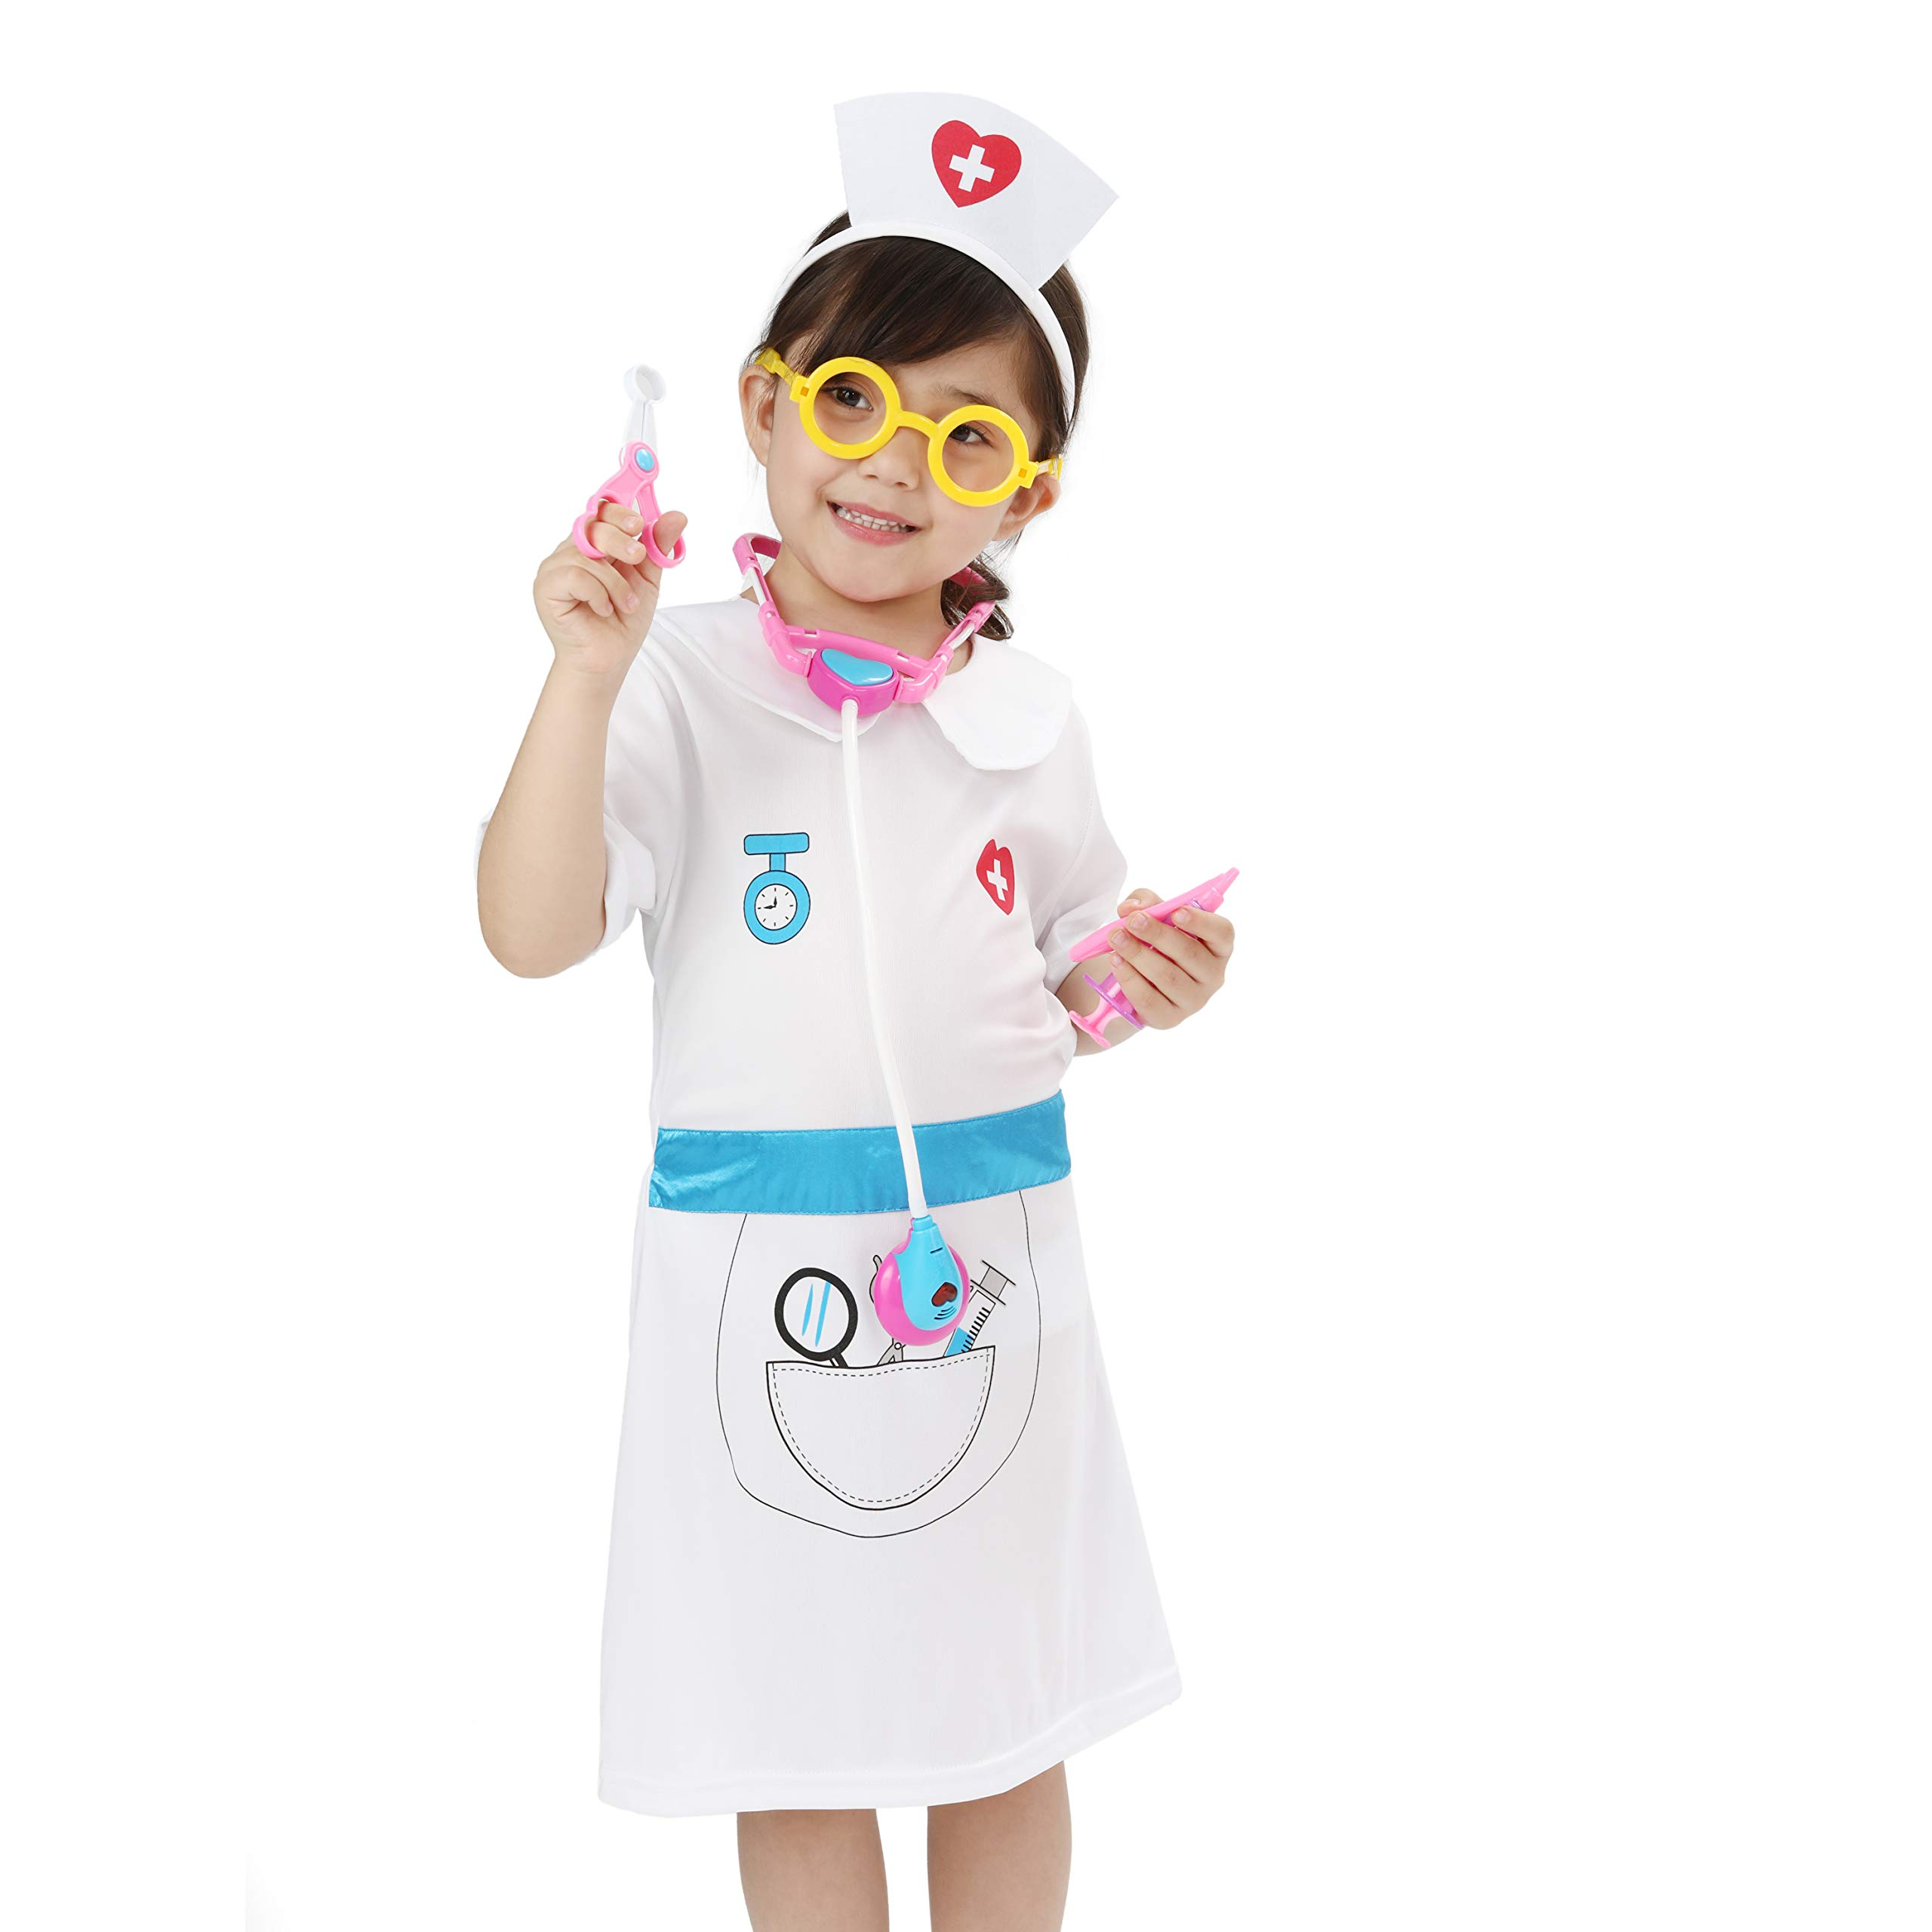 Wizland Child Role Play Dress Up Nurse Costume Playset for Kids,Doctor Nurse Medical Kits,7 pcs with Coat,Hat,Glasses,Stethoscope,Thermometer,Syringe,Scissors,for Age 3-6